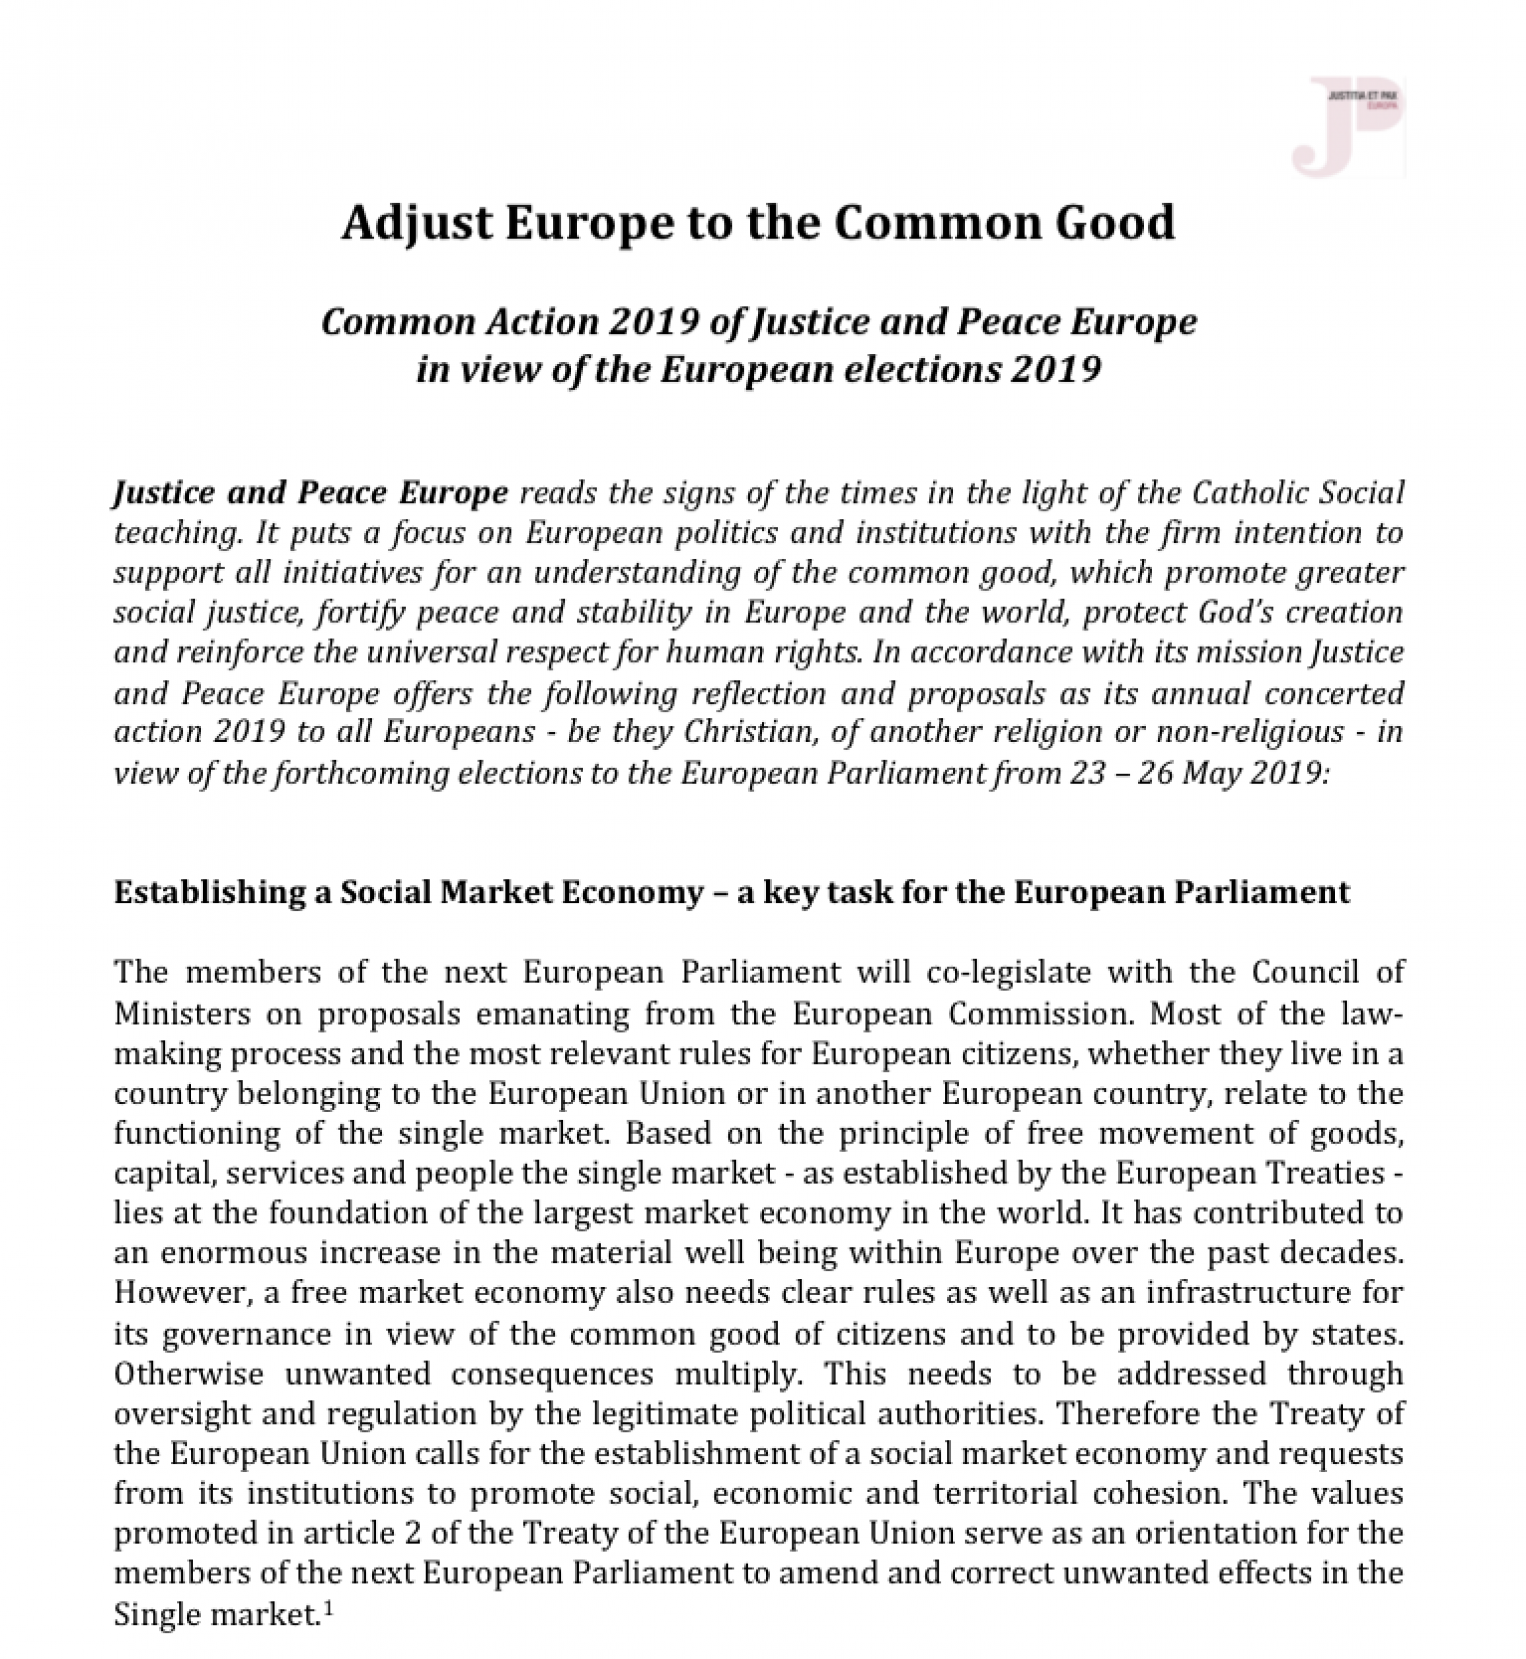 """Adjust Europe to the Common Good"" - Justice & Peace Europe Concerted Action 2019 in view of the European elections"